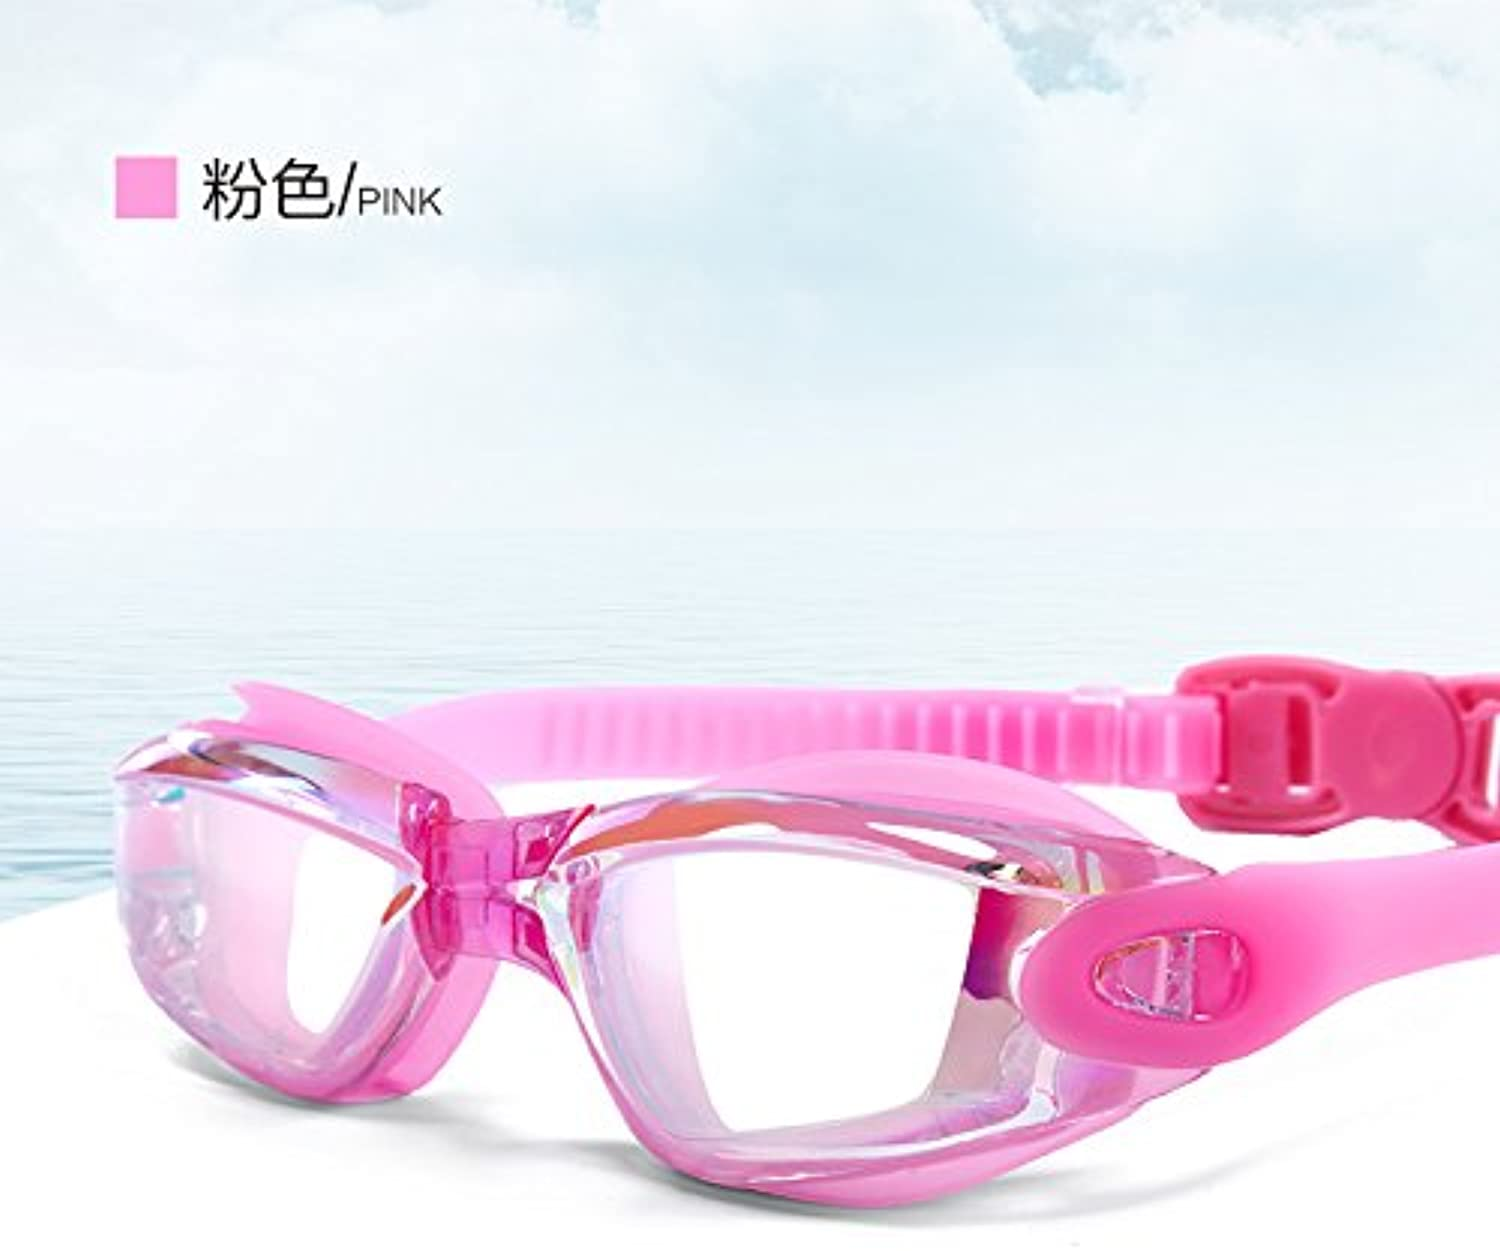 KOMNY Professional swimming goggles, high definition waterproof and anti fog men and women general swimming glasses, plain swimming goggles,Pink